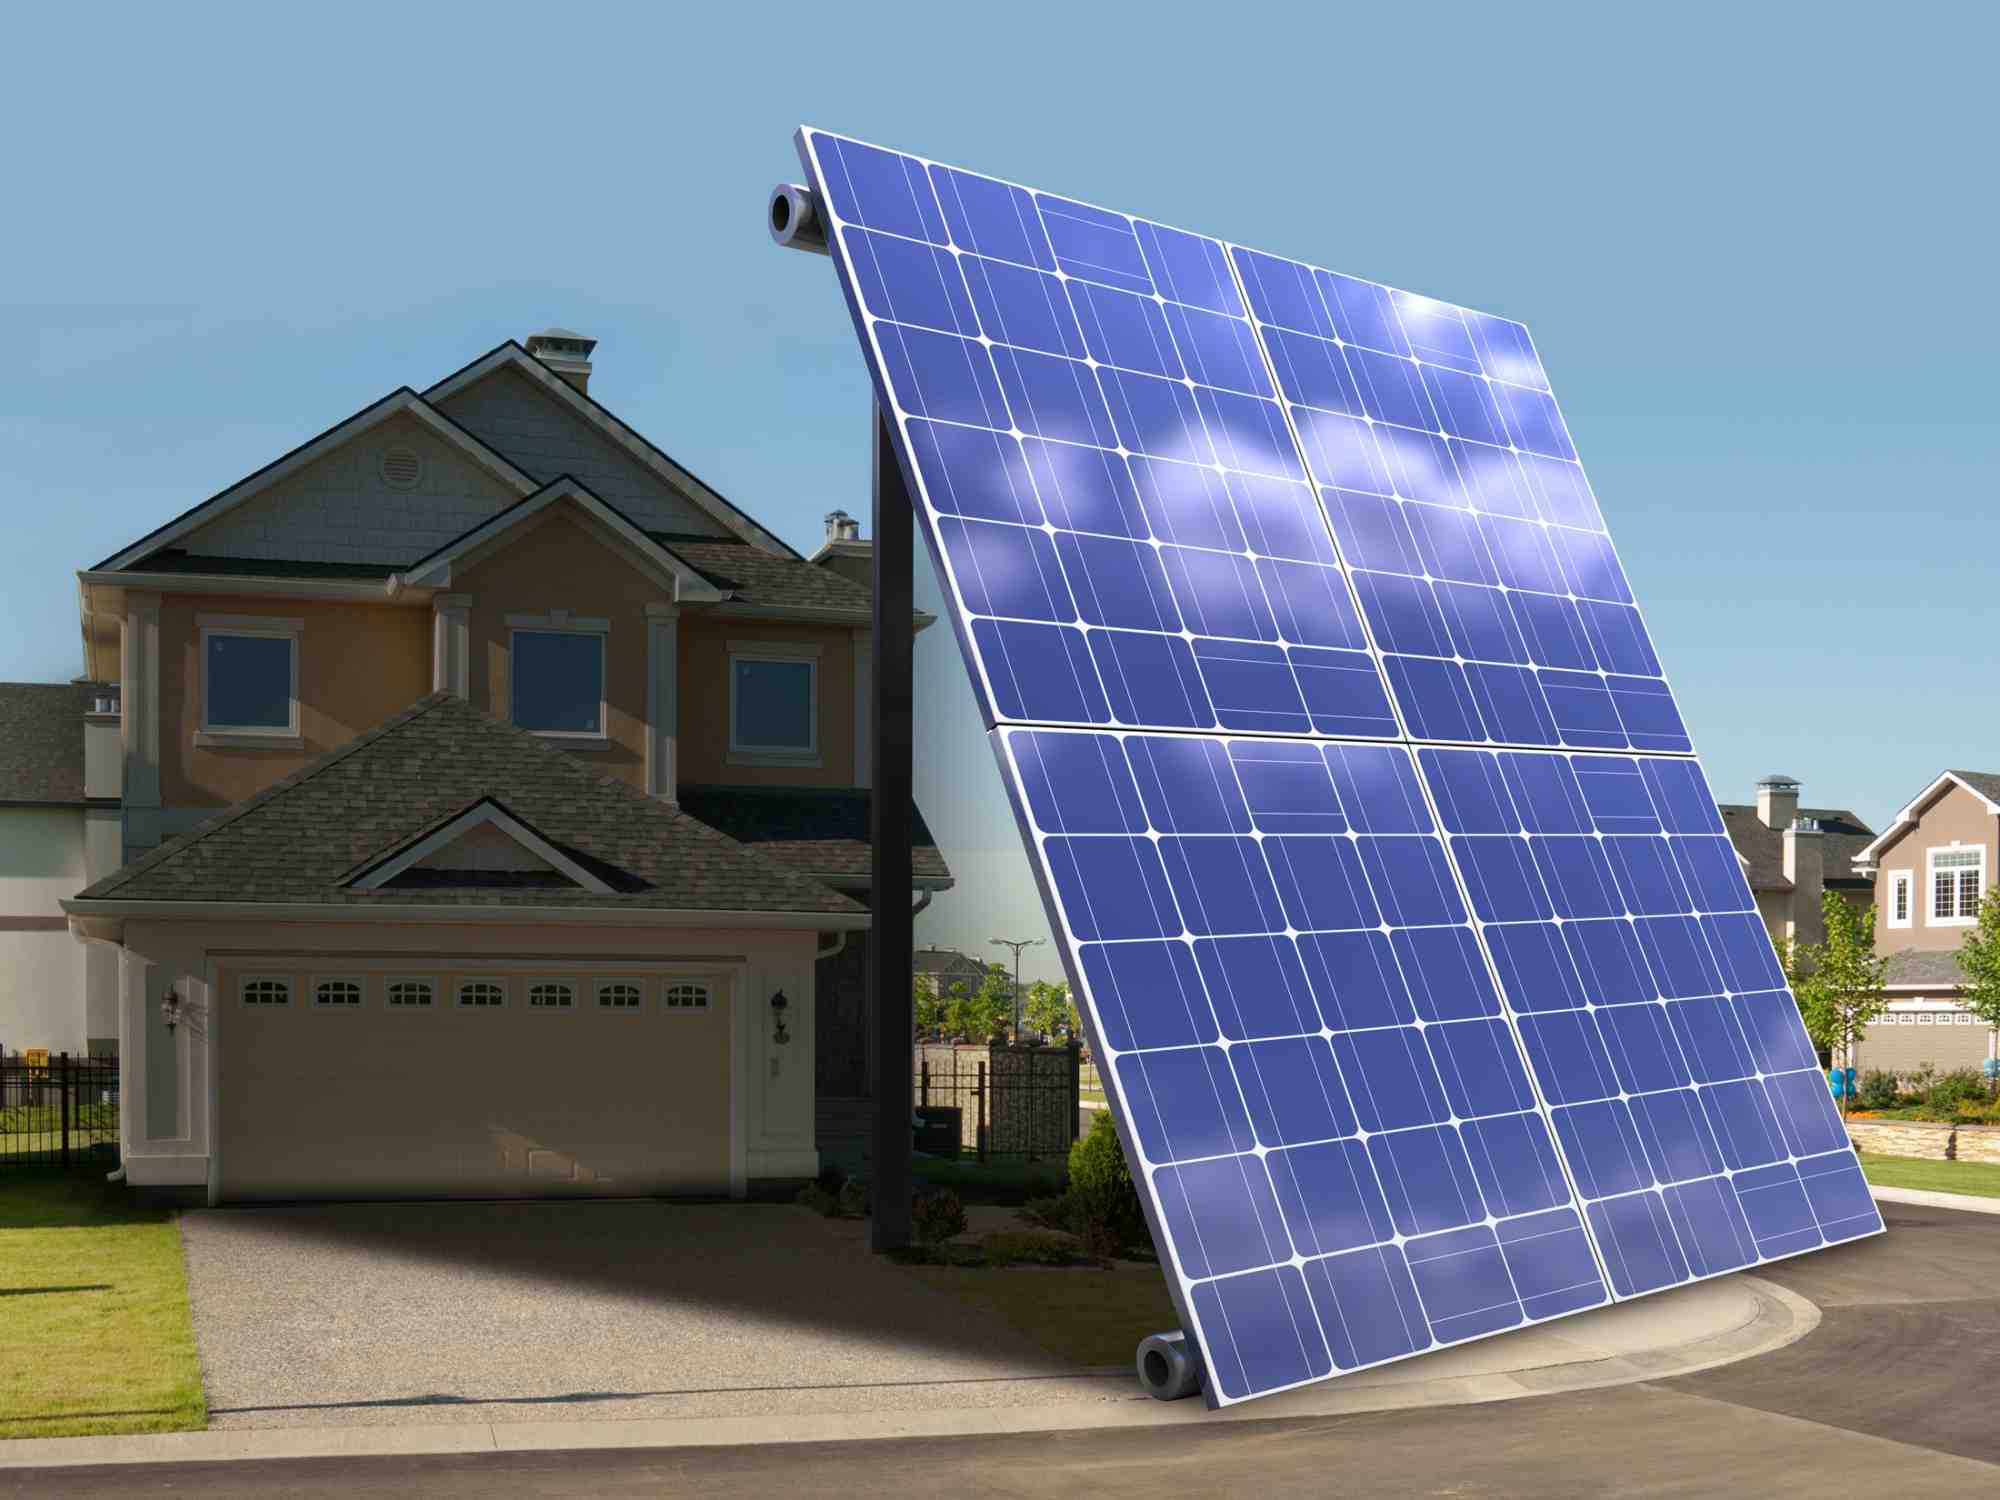 Can I get a grant to install solar panels?